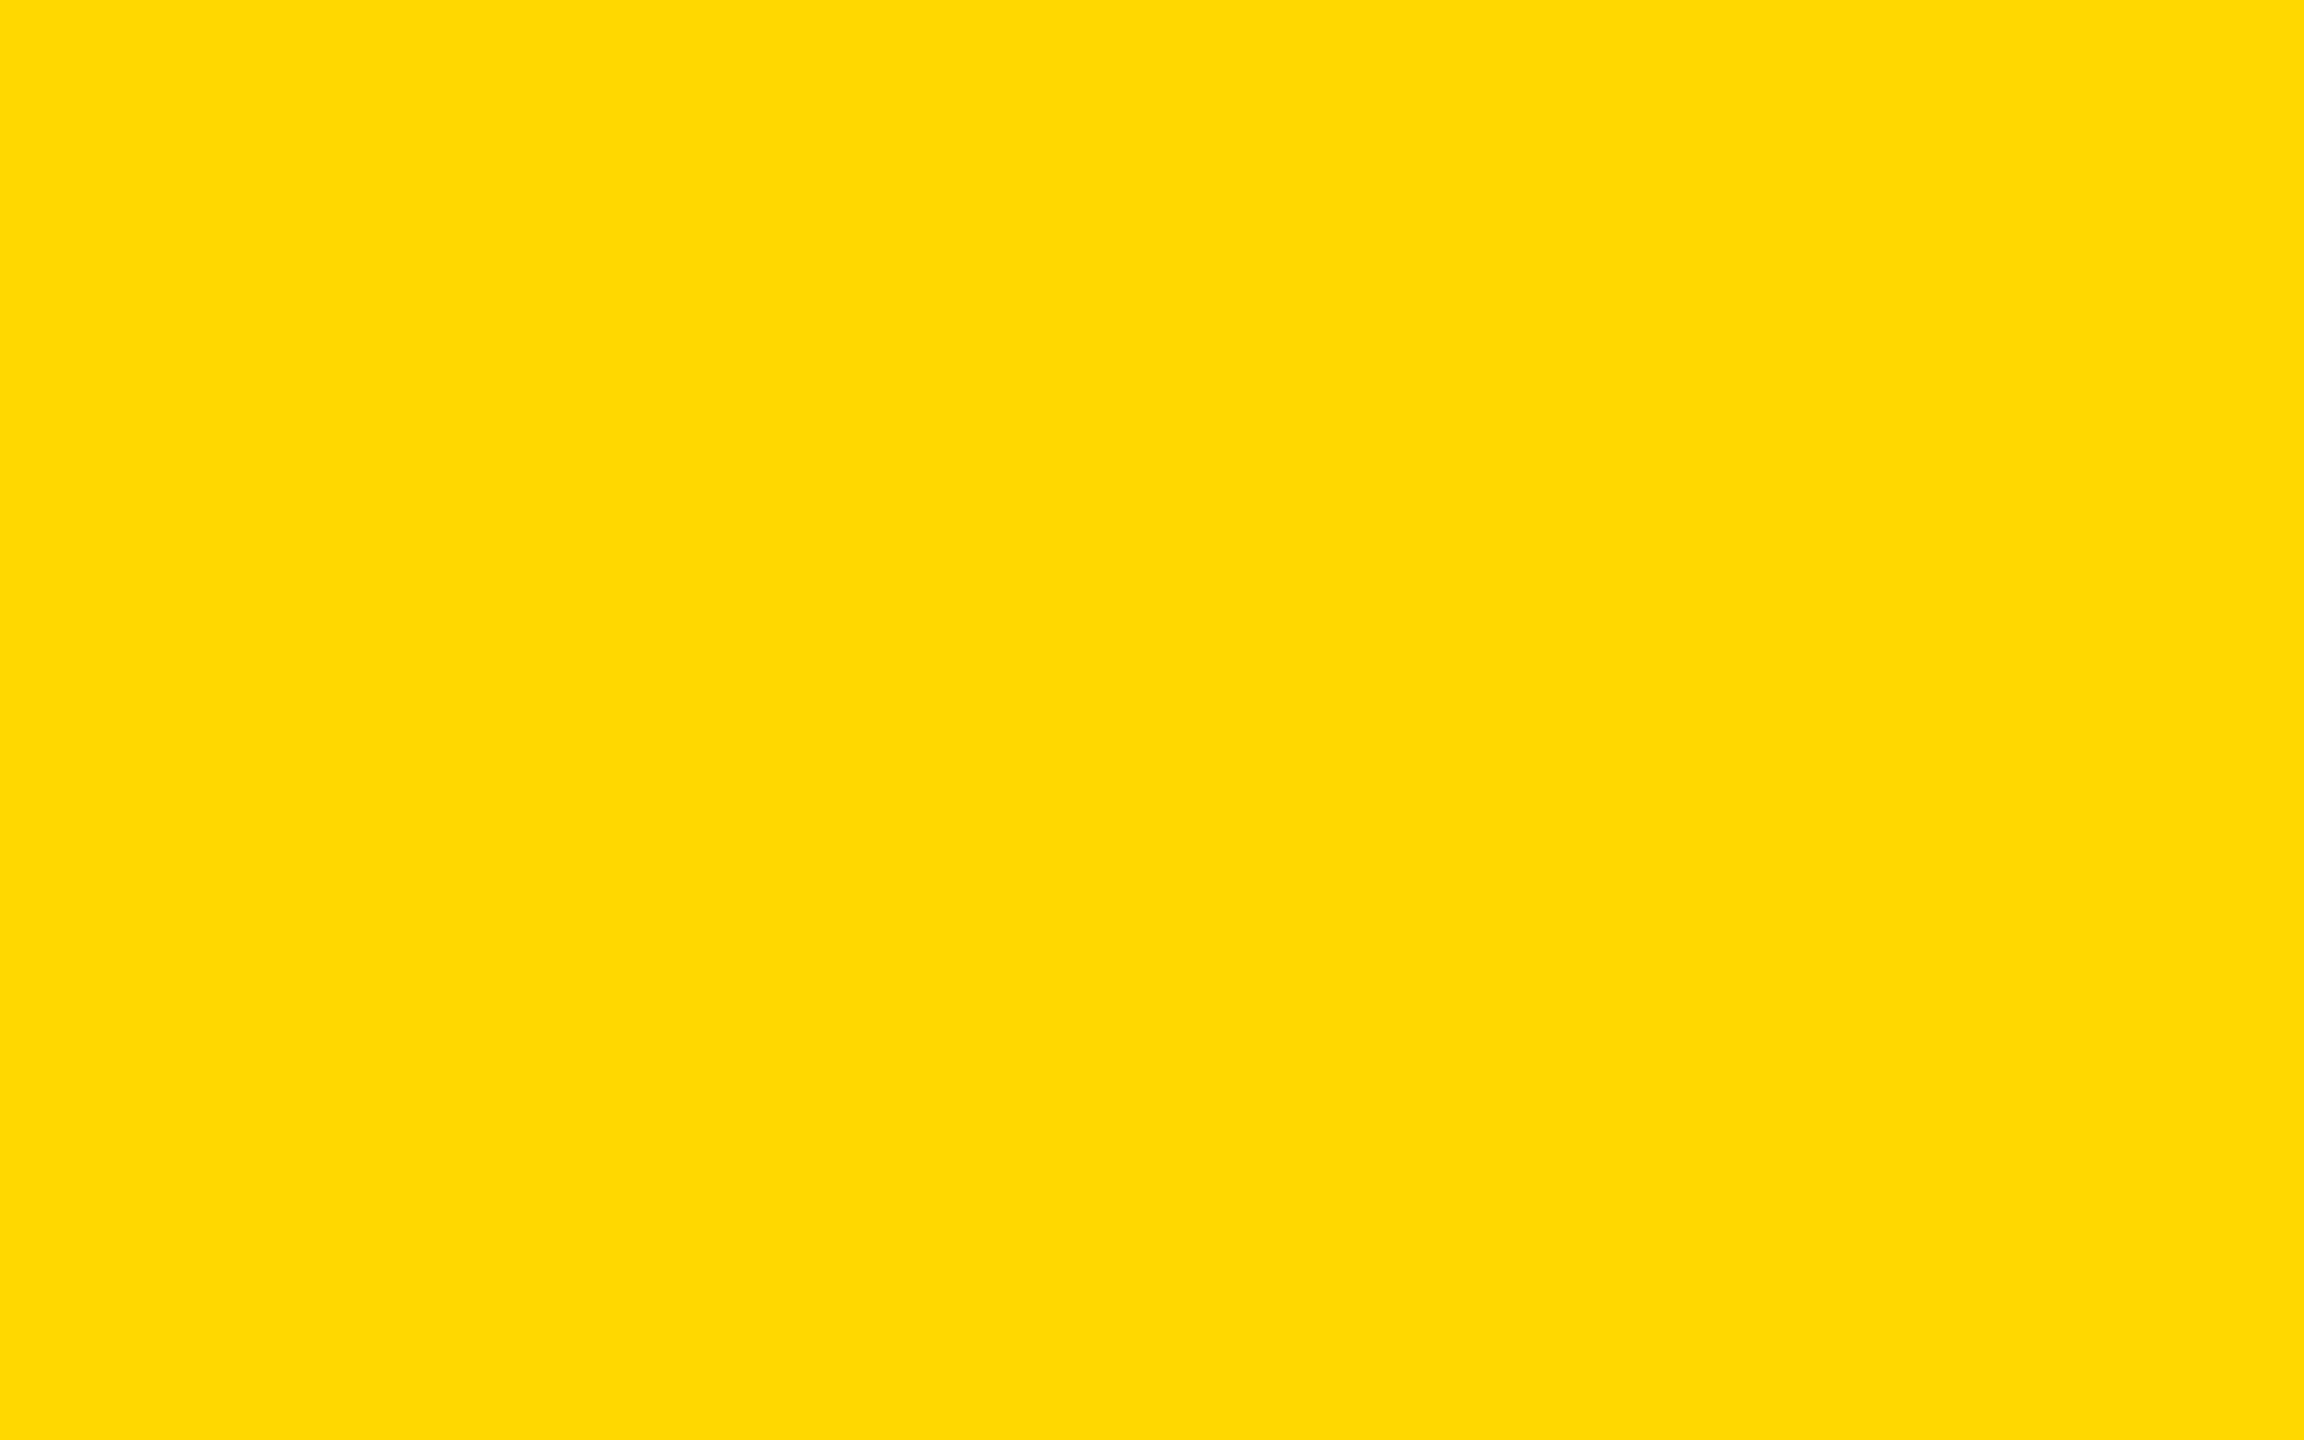 2304x1440 School Bus Yellow Solid Color Background